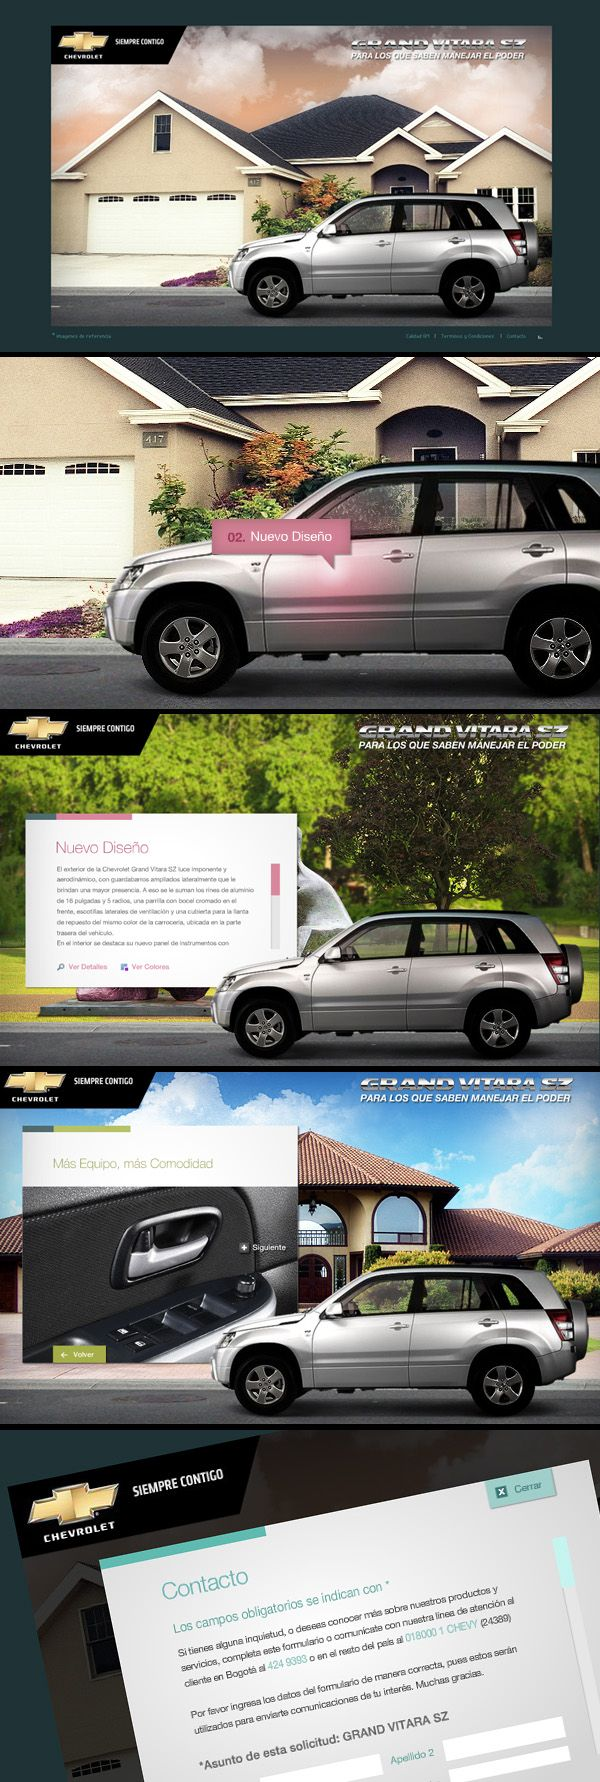 Chevrolet Grand Vitara by Guillermo Vaccarezza, via Behance